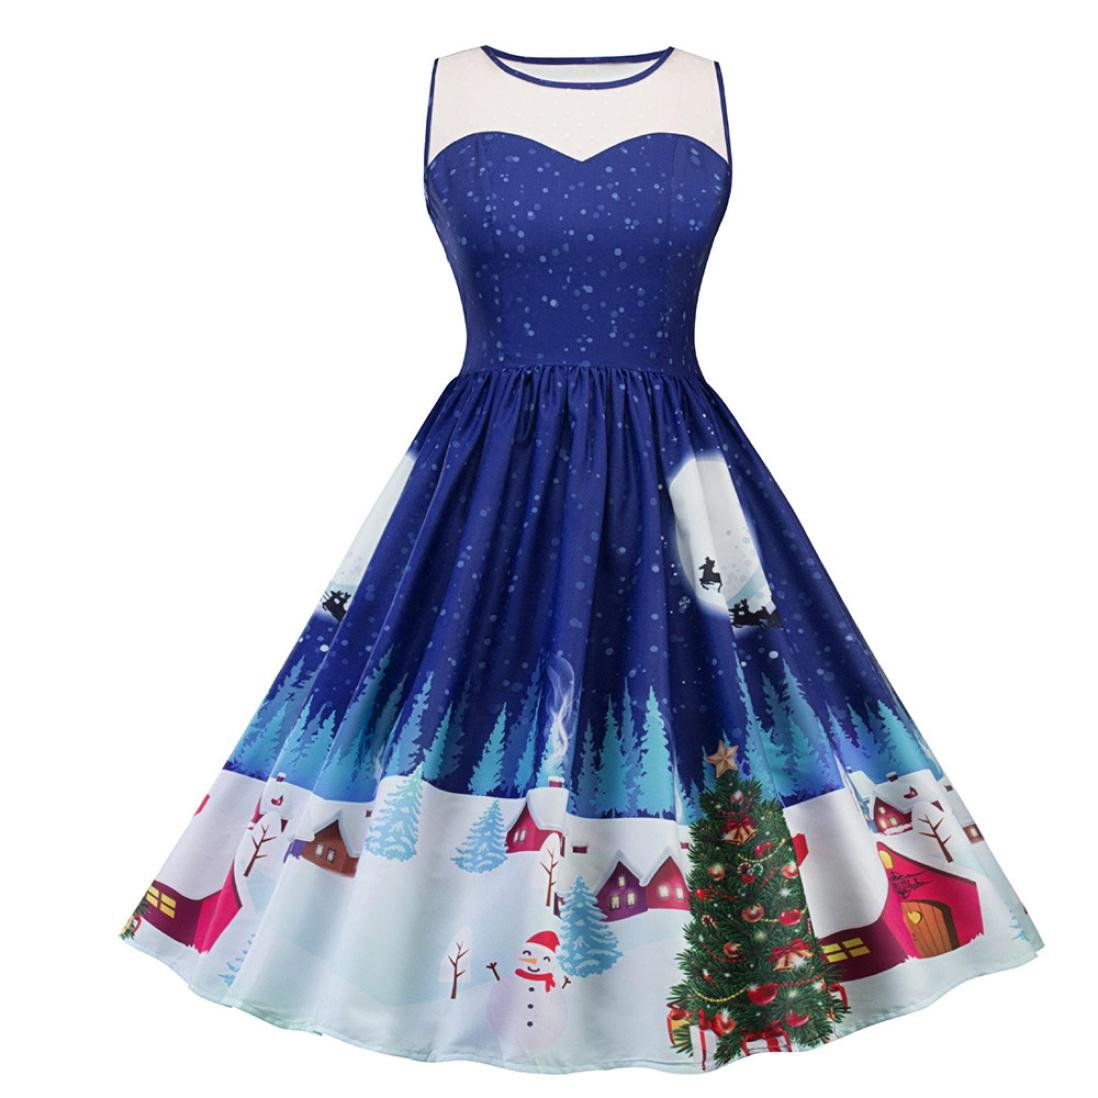 Women Dress, Gillberry Women's Vintage Christmas O-Neck Printed Party Retro A-Line Swing Dress (S, Multicolor)